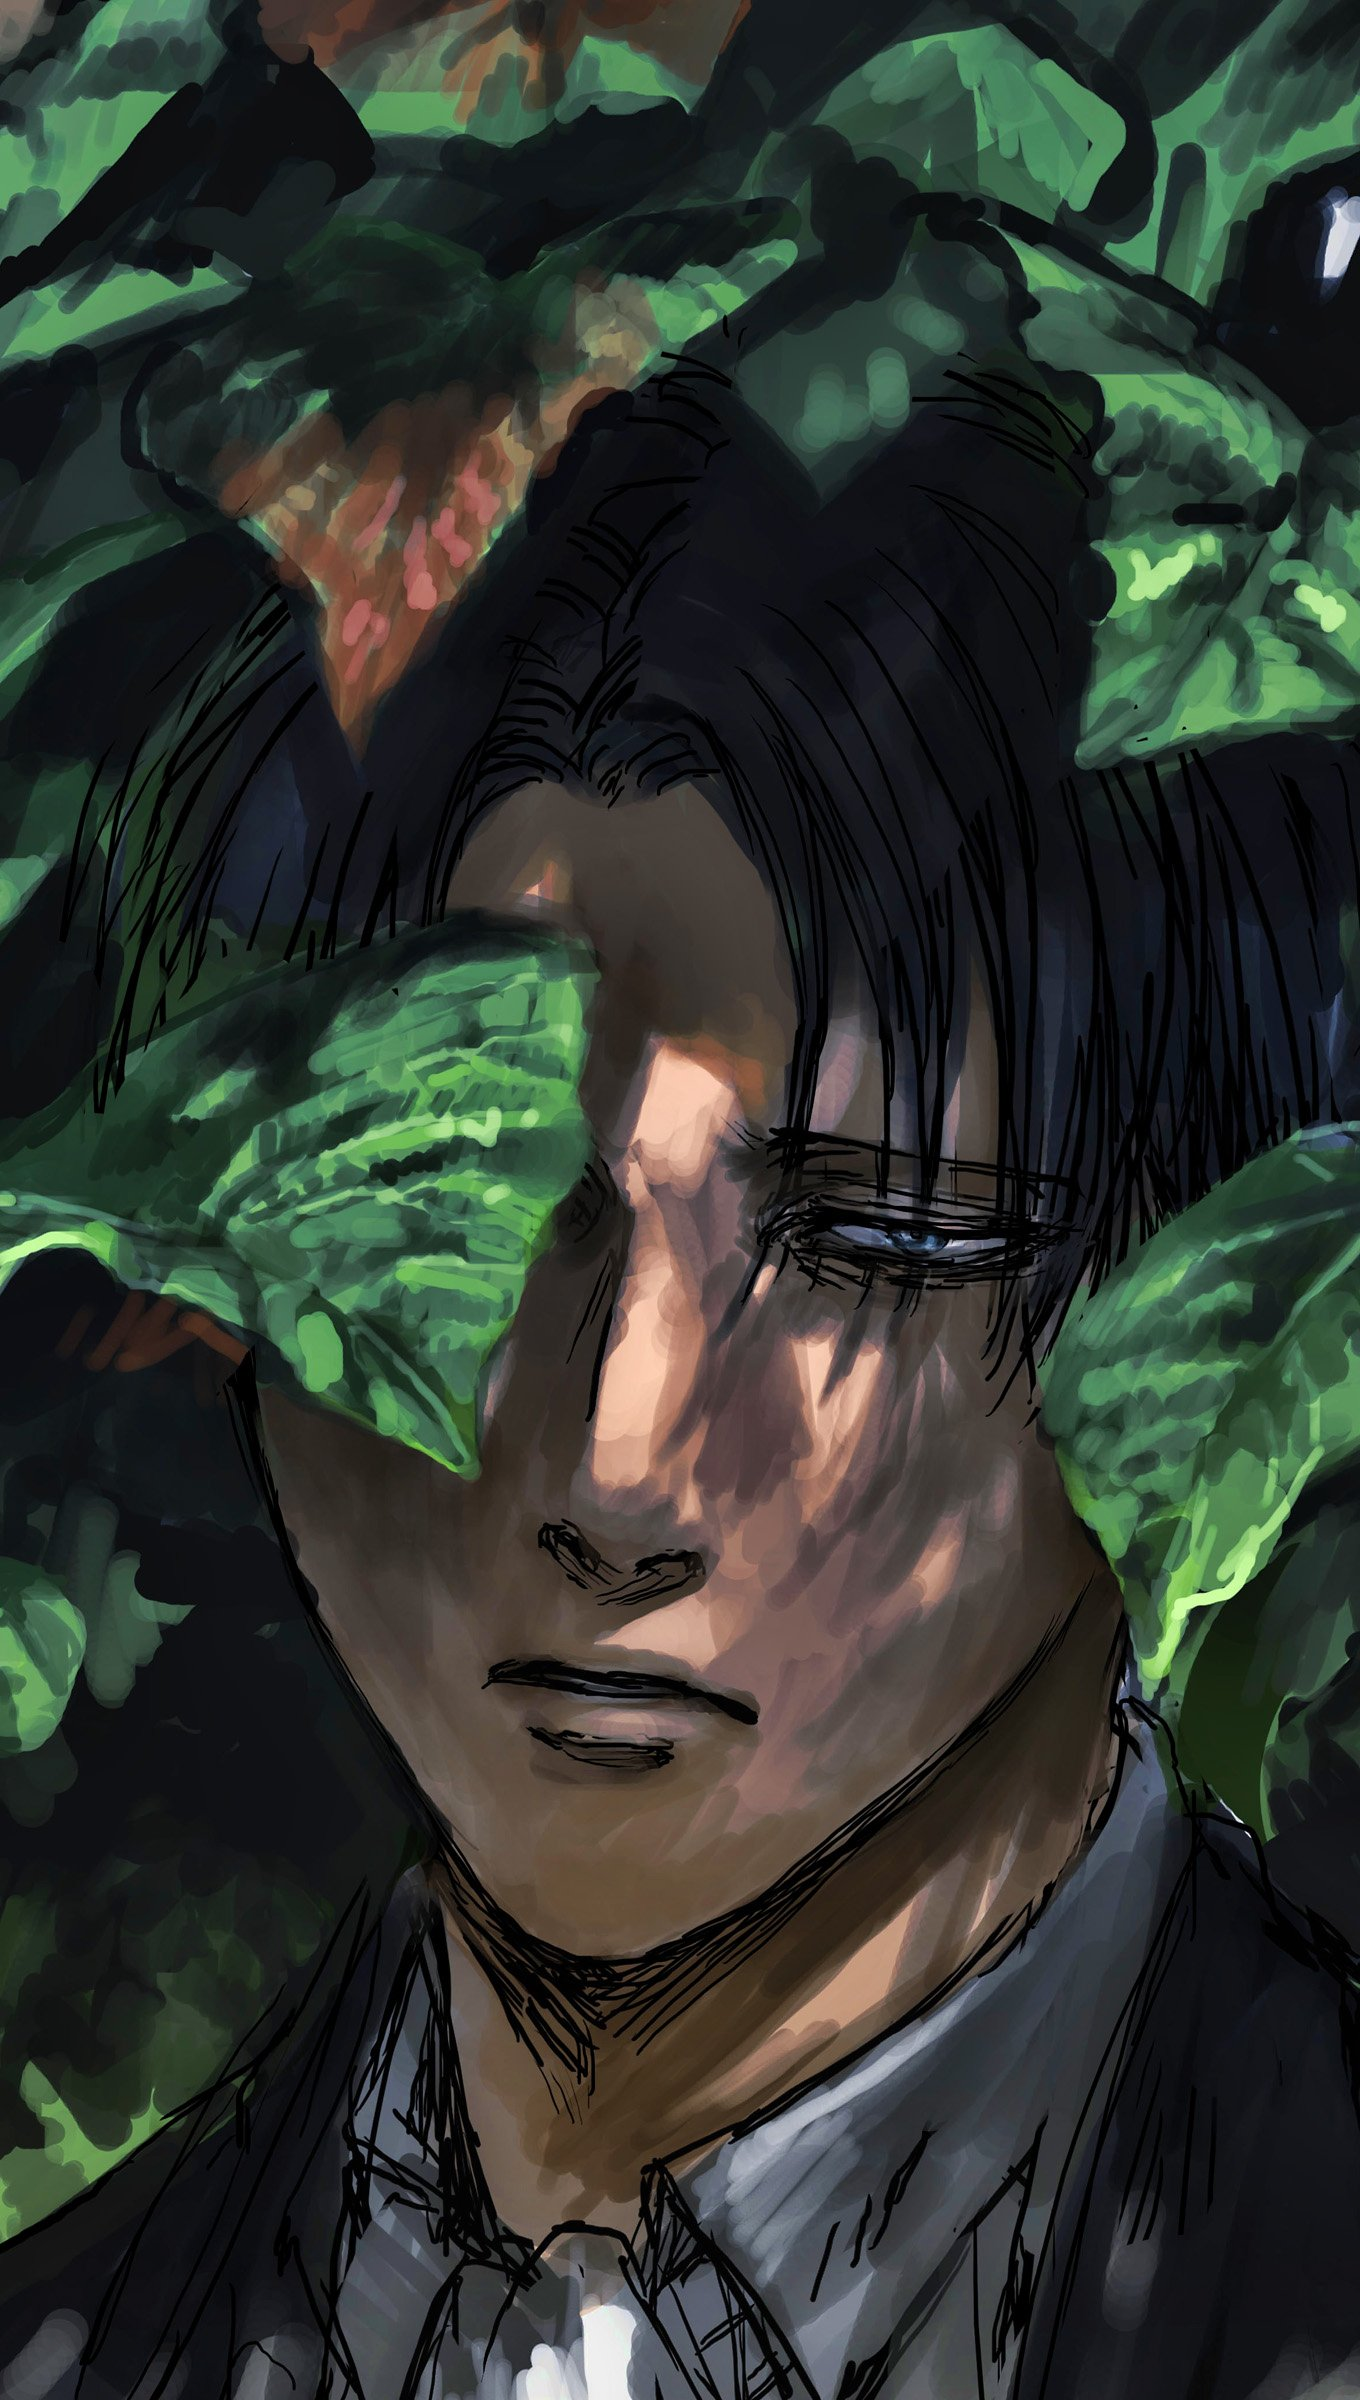 Anime Wallpaper Levi Ackerman from Attack on Titans Vertical